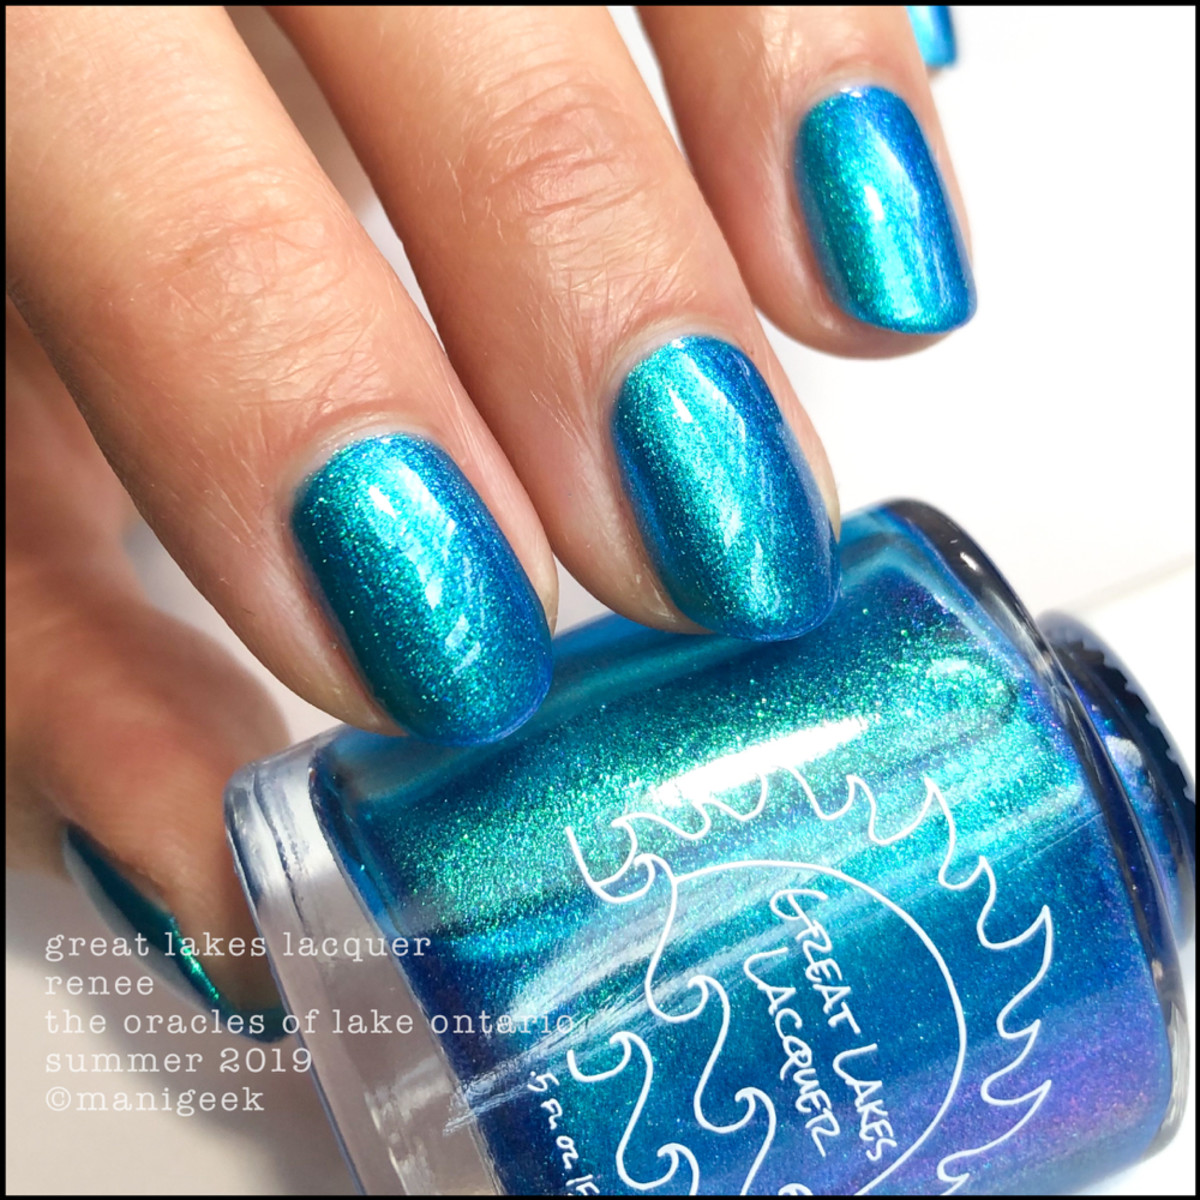 Great Lakes Lacquer Oracles of Lake Ontario Renee - LE IEC 2019 1